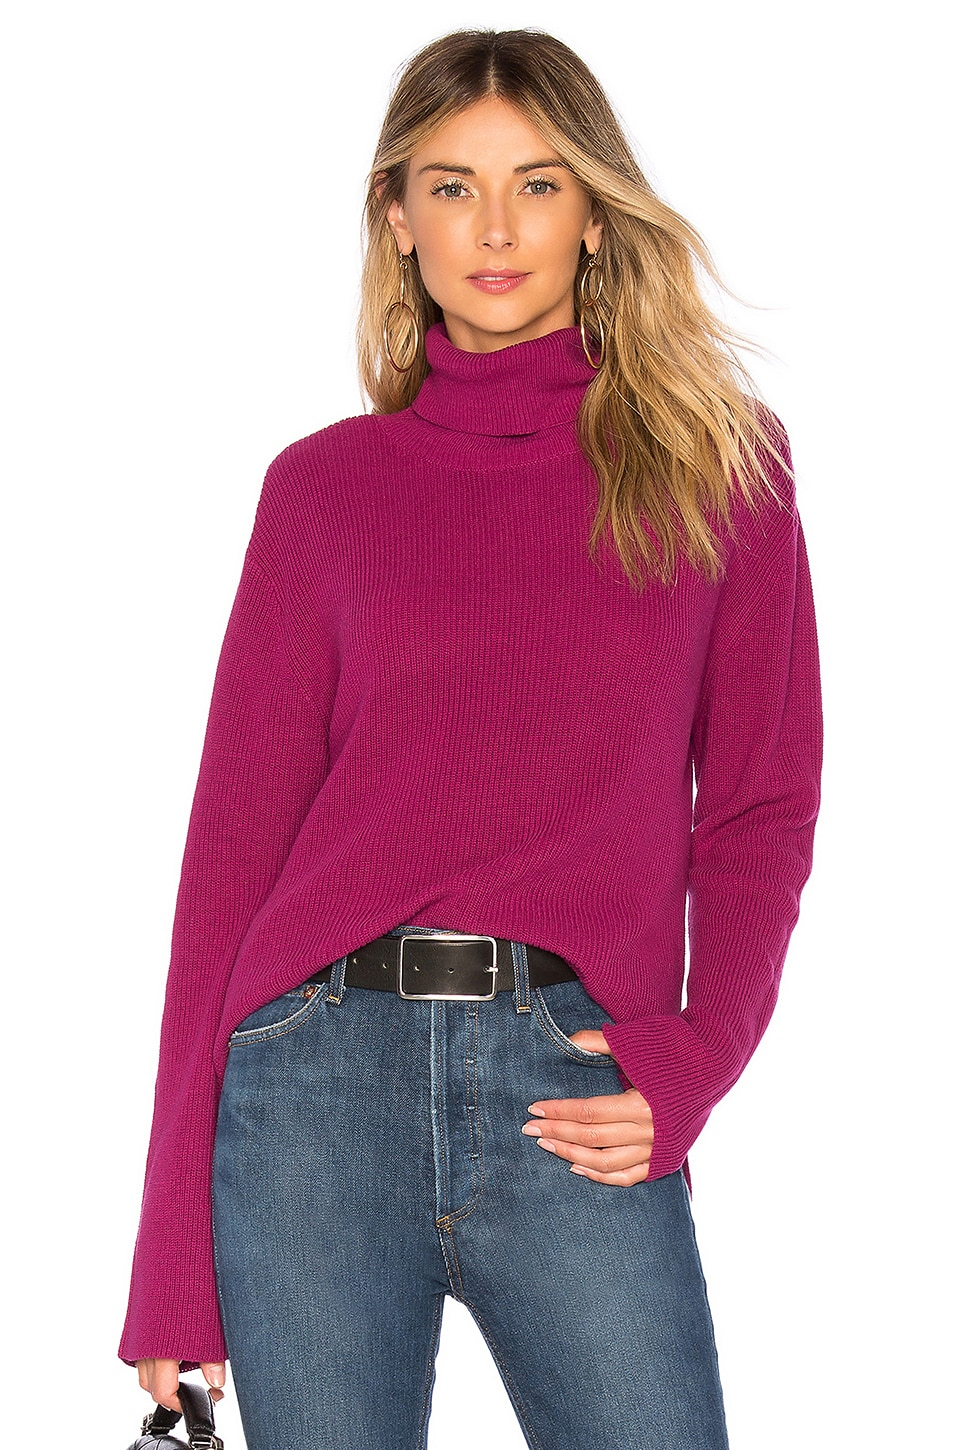 Callahan X REVOLVE Turtleneck Sweater in Maroon